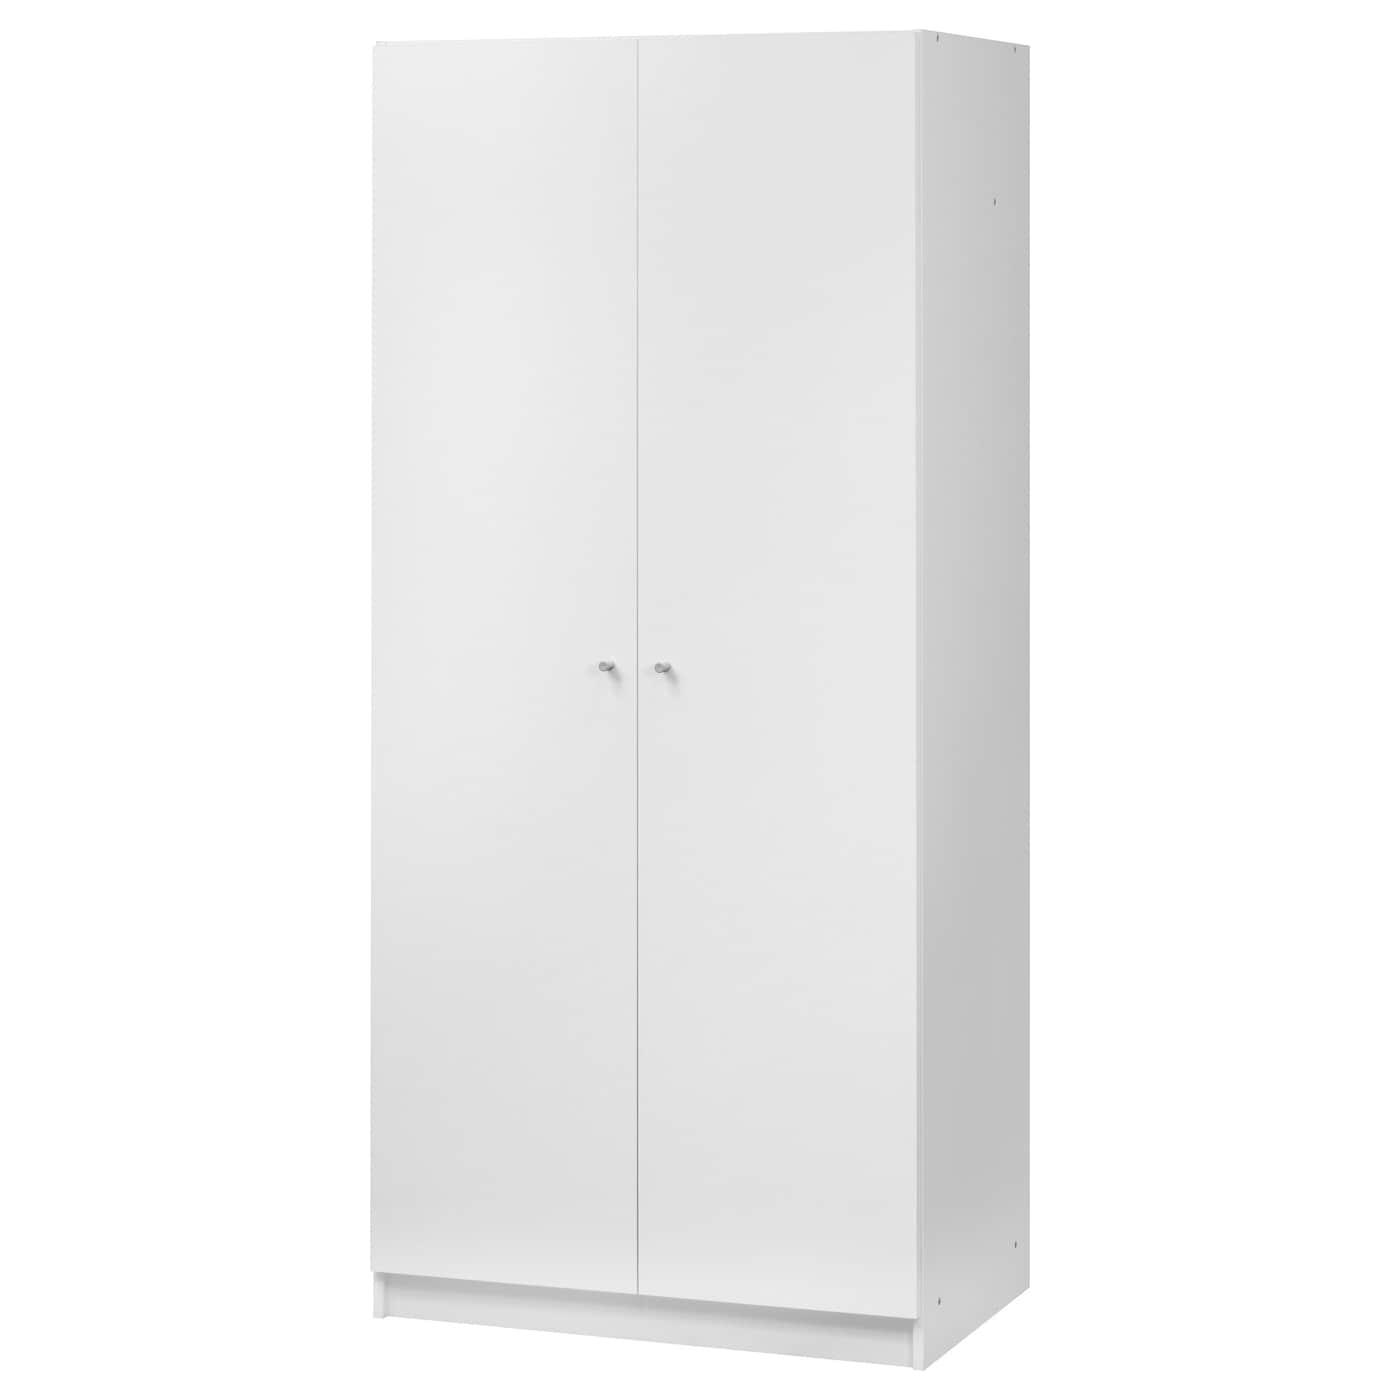 Bostrak wardrobe white 80x50x180 cm ikea for Miroir 160 x 50